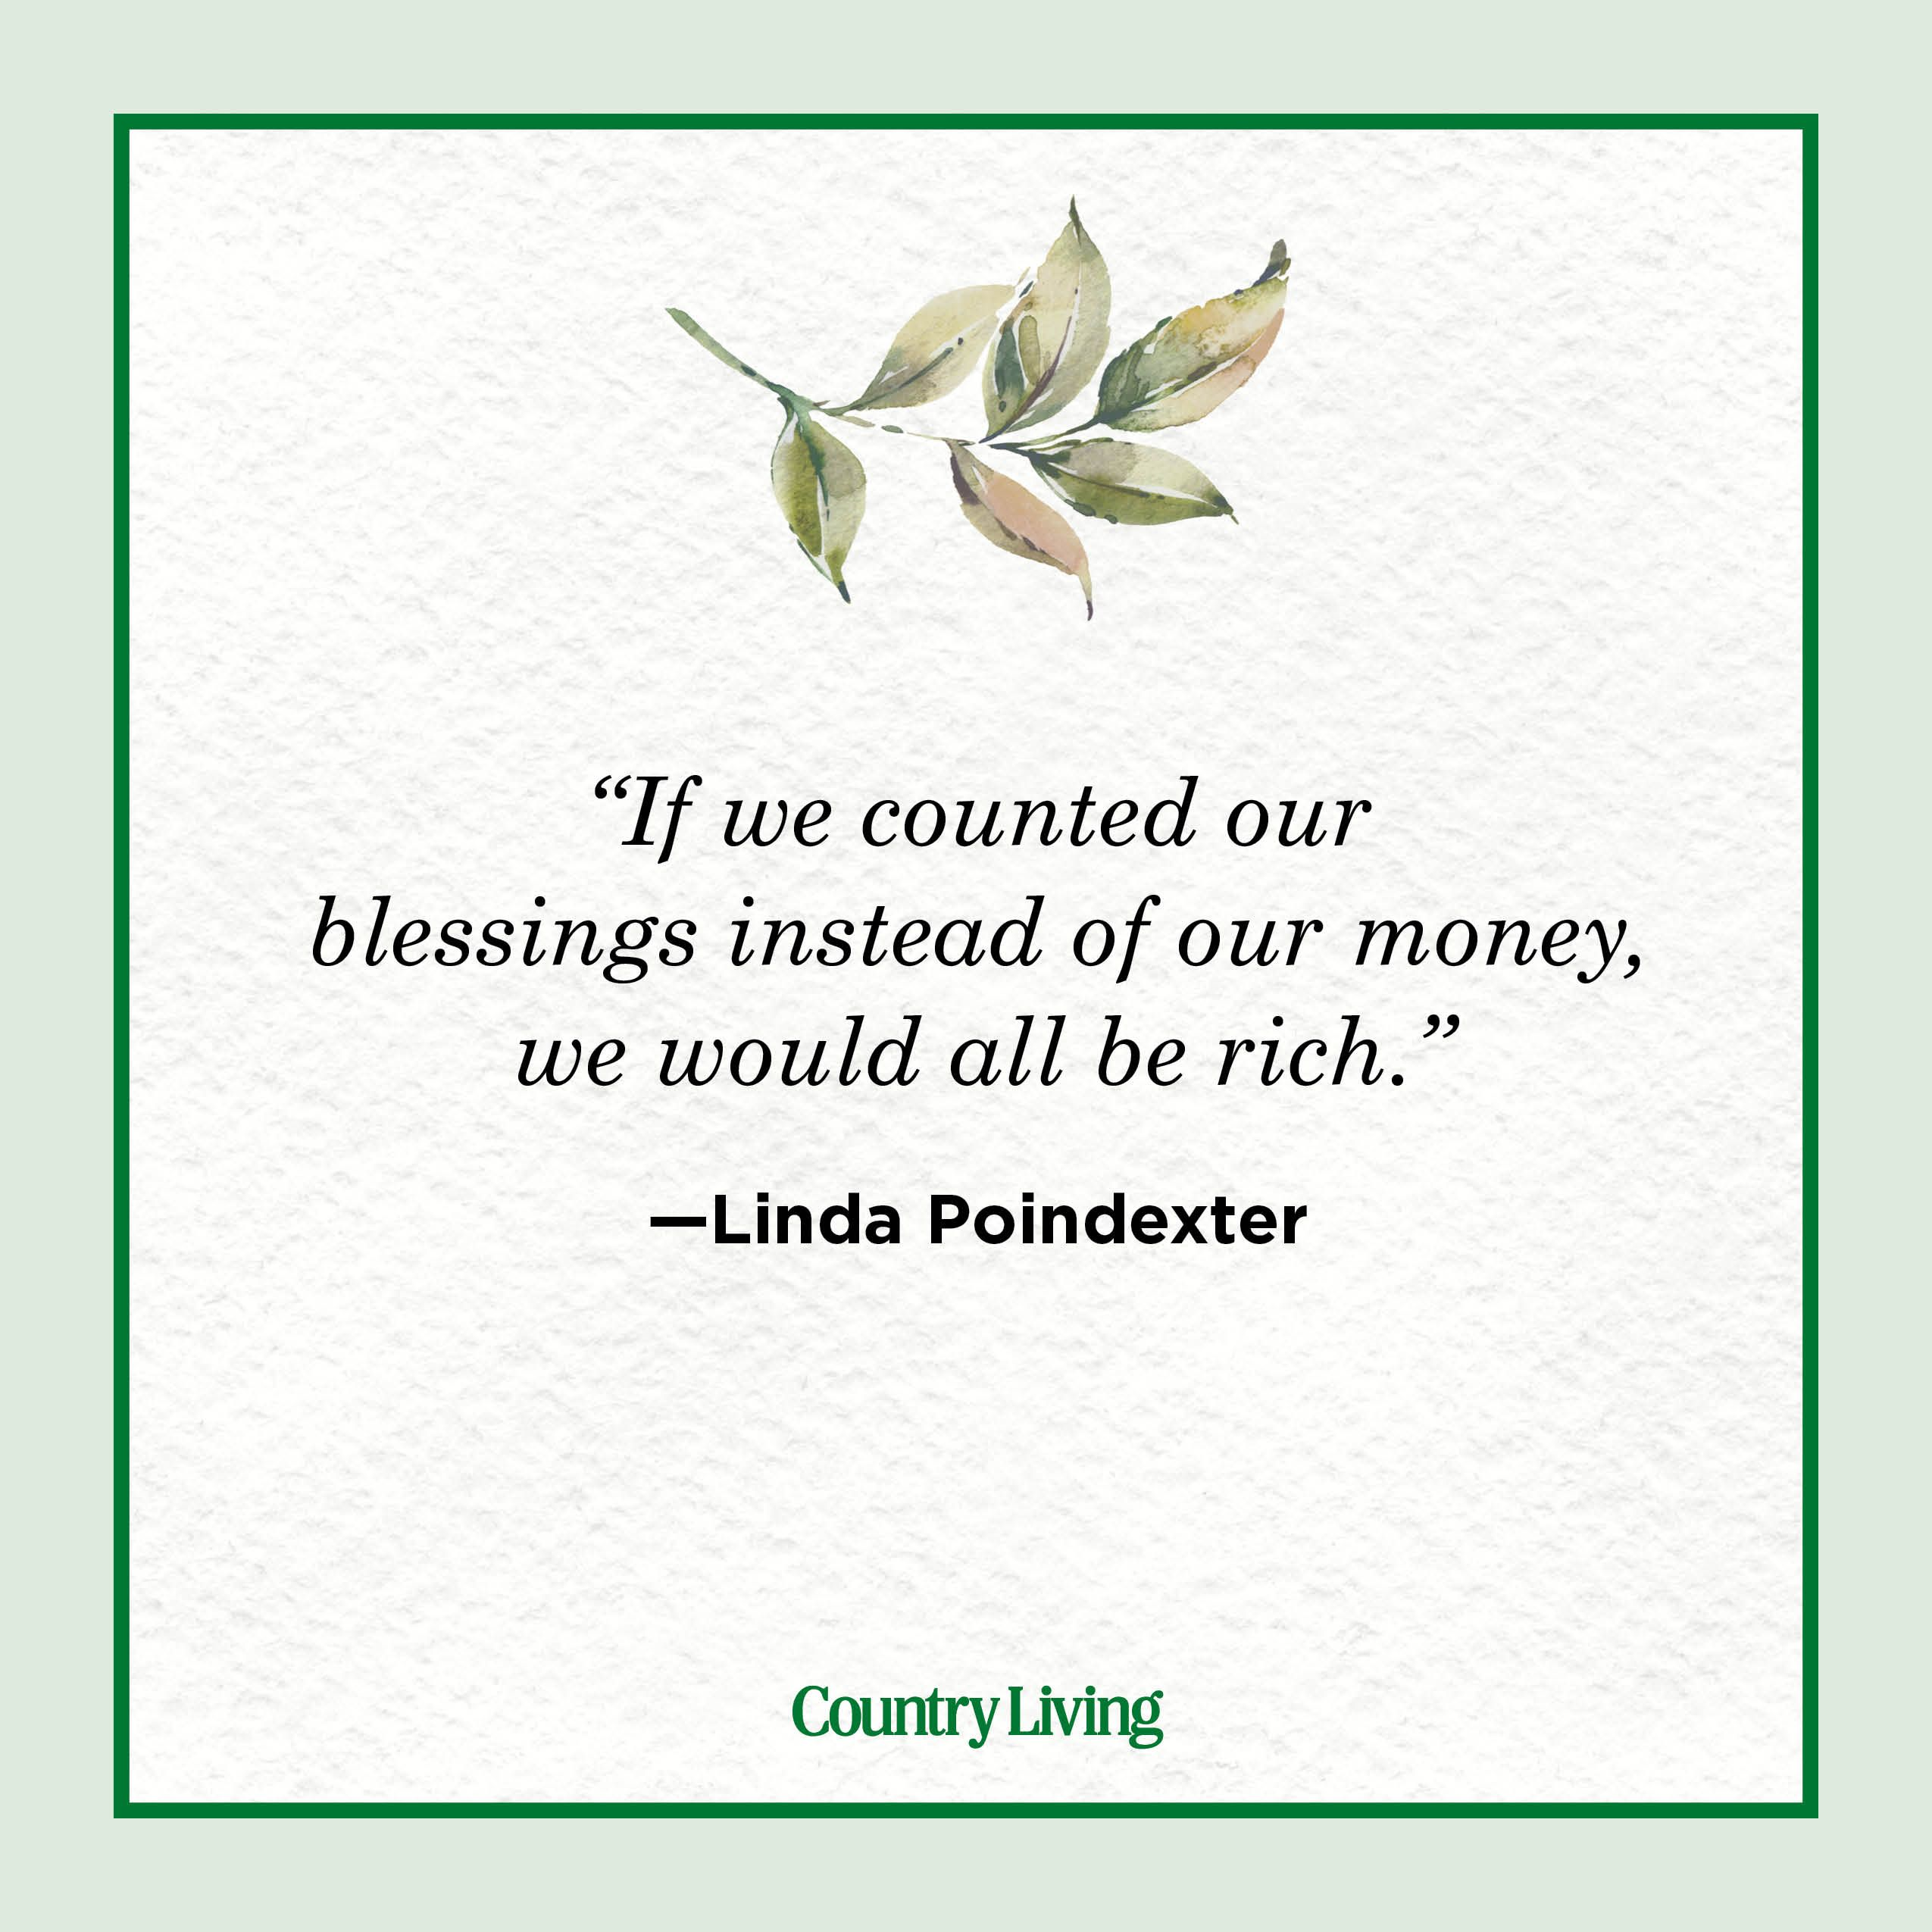 3 Blessed Quotes - Inspirational Quotes About Being Blessed in Life